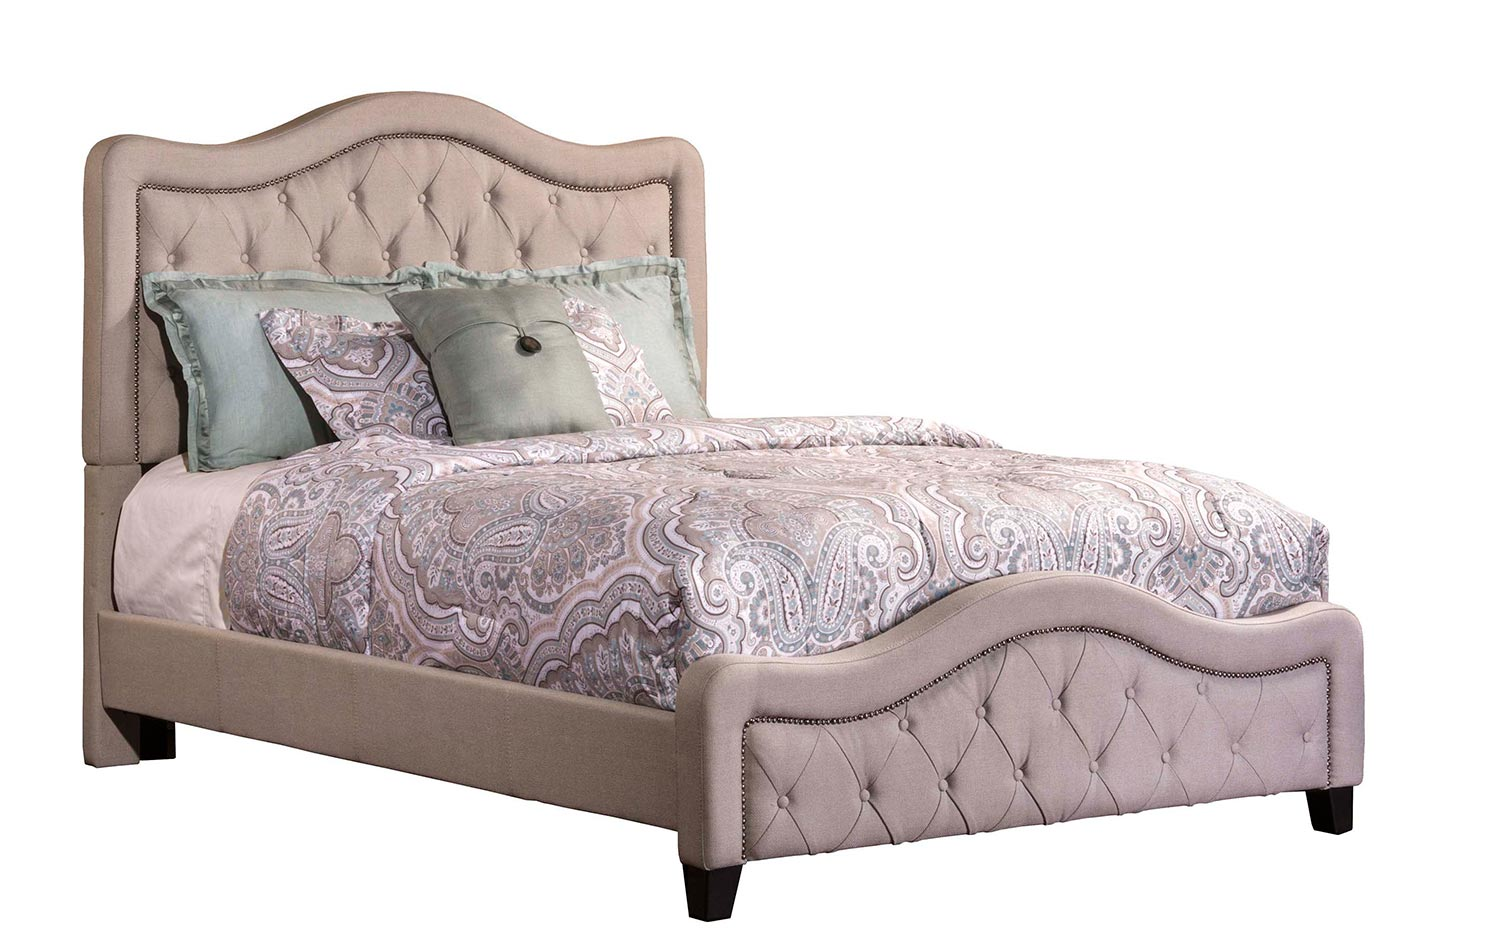 Hillsdale Trieste Tufted Upholstered Bed - Dove Gray